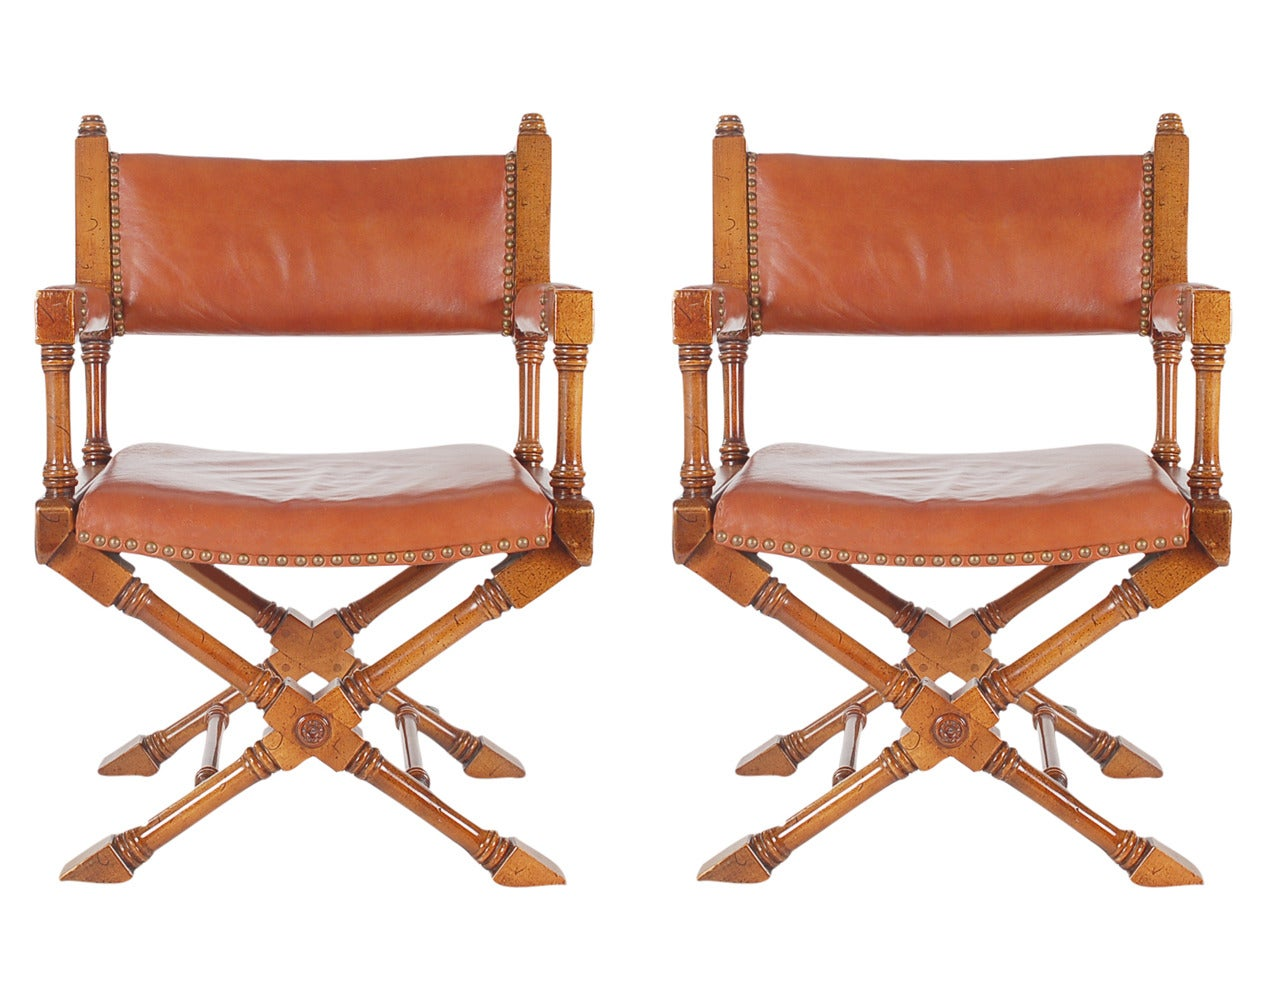 leather directors chair wicker ukulele vintage campaign or director chairs at 1stdibs